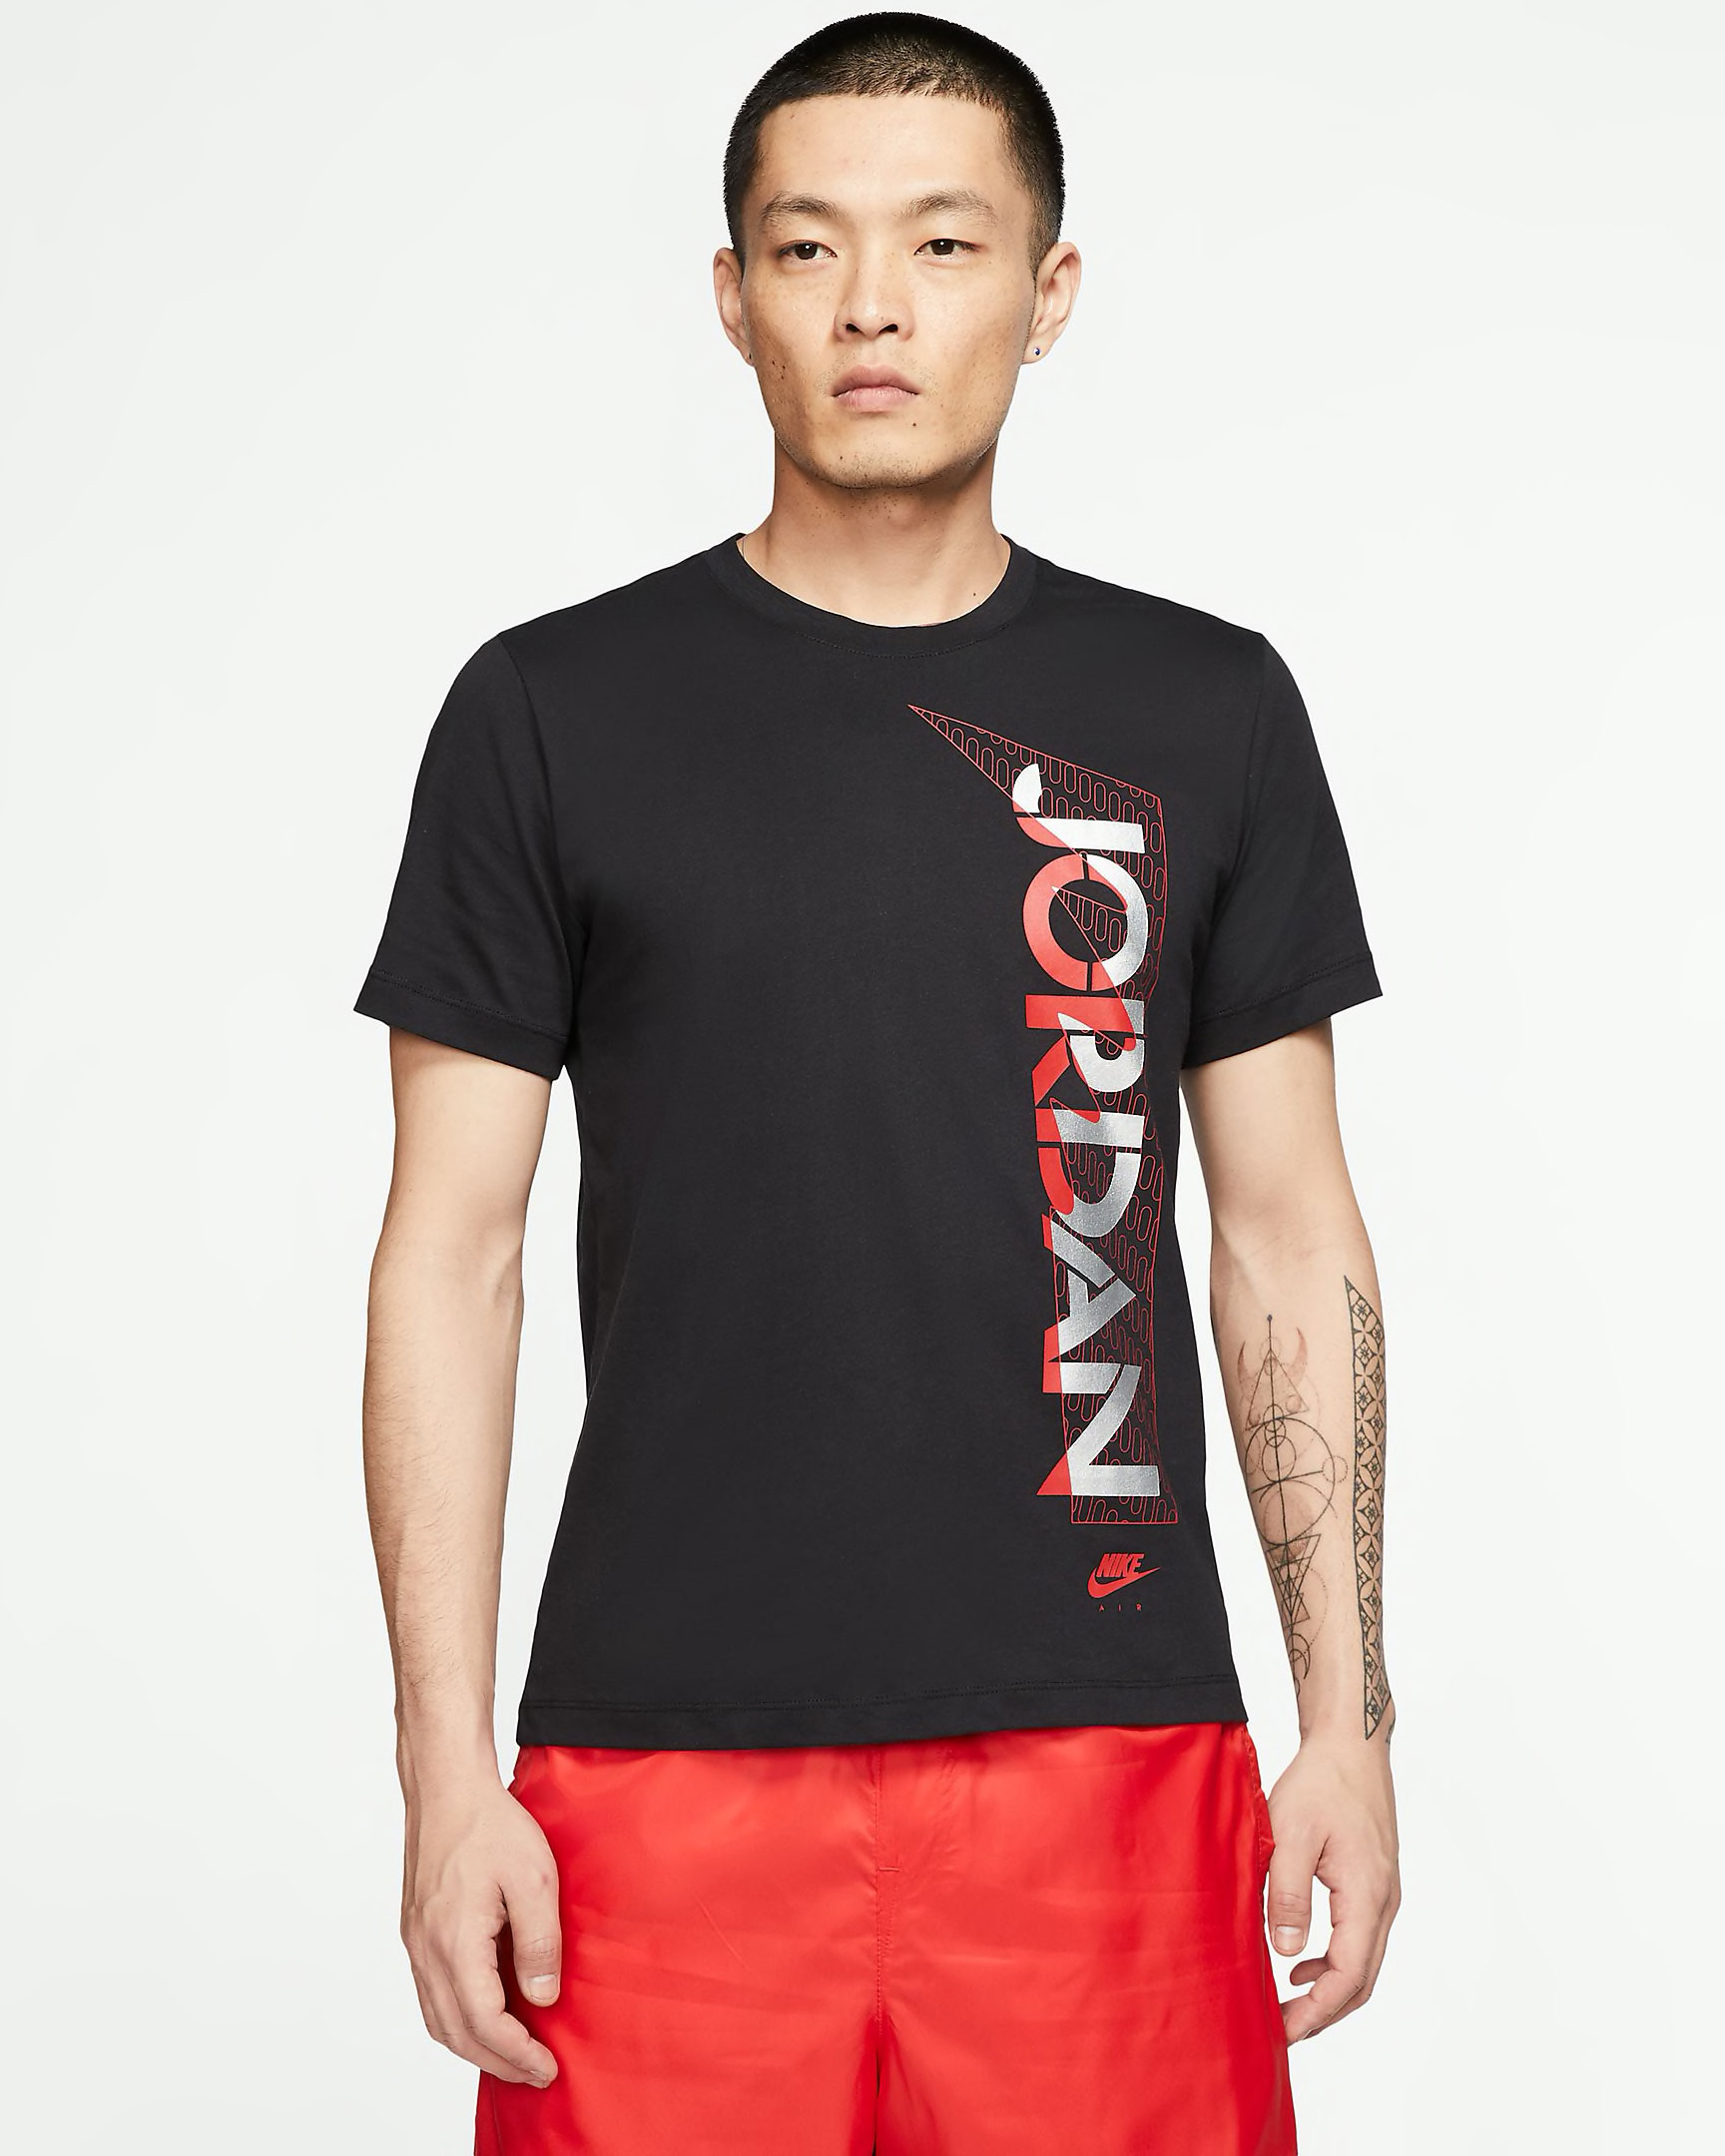 air-jordan-5-fire-red-2020-shirt-white-black-red-1